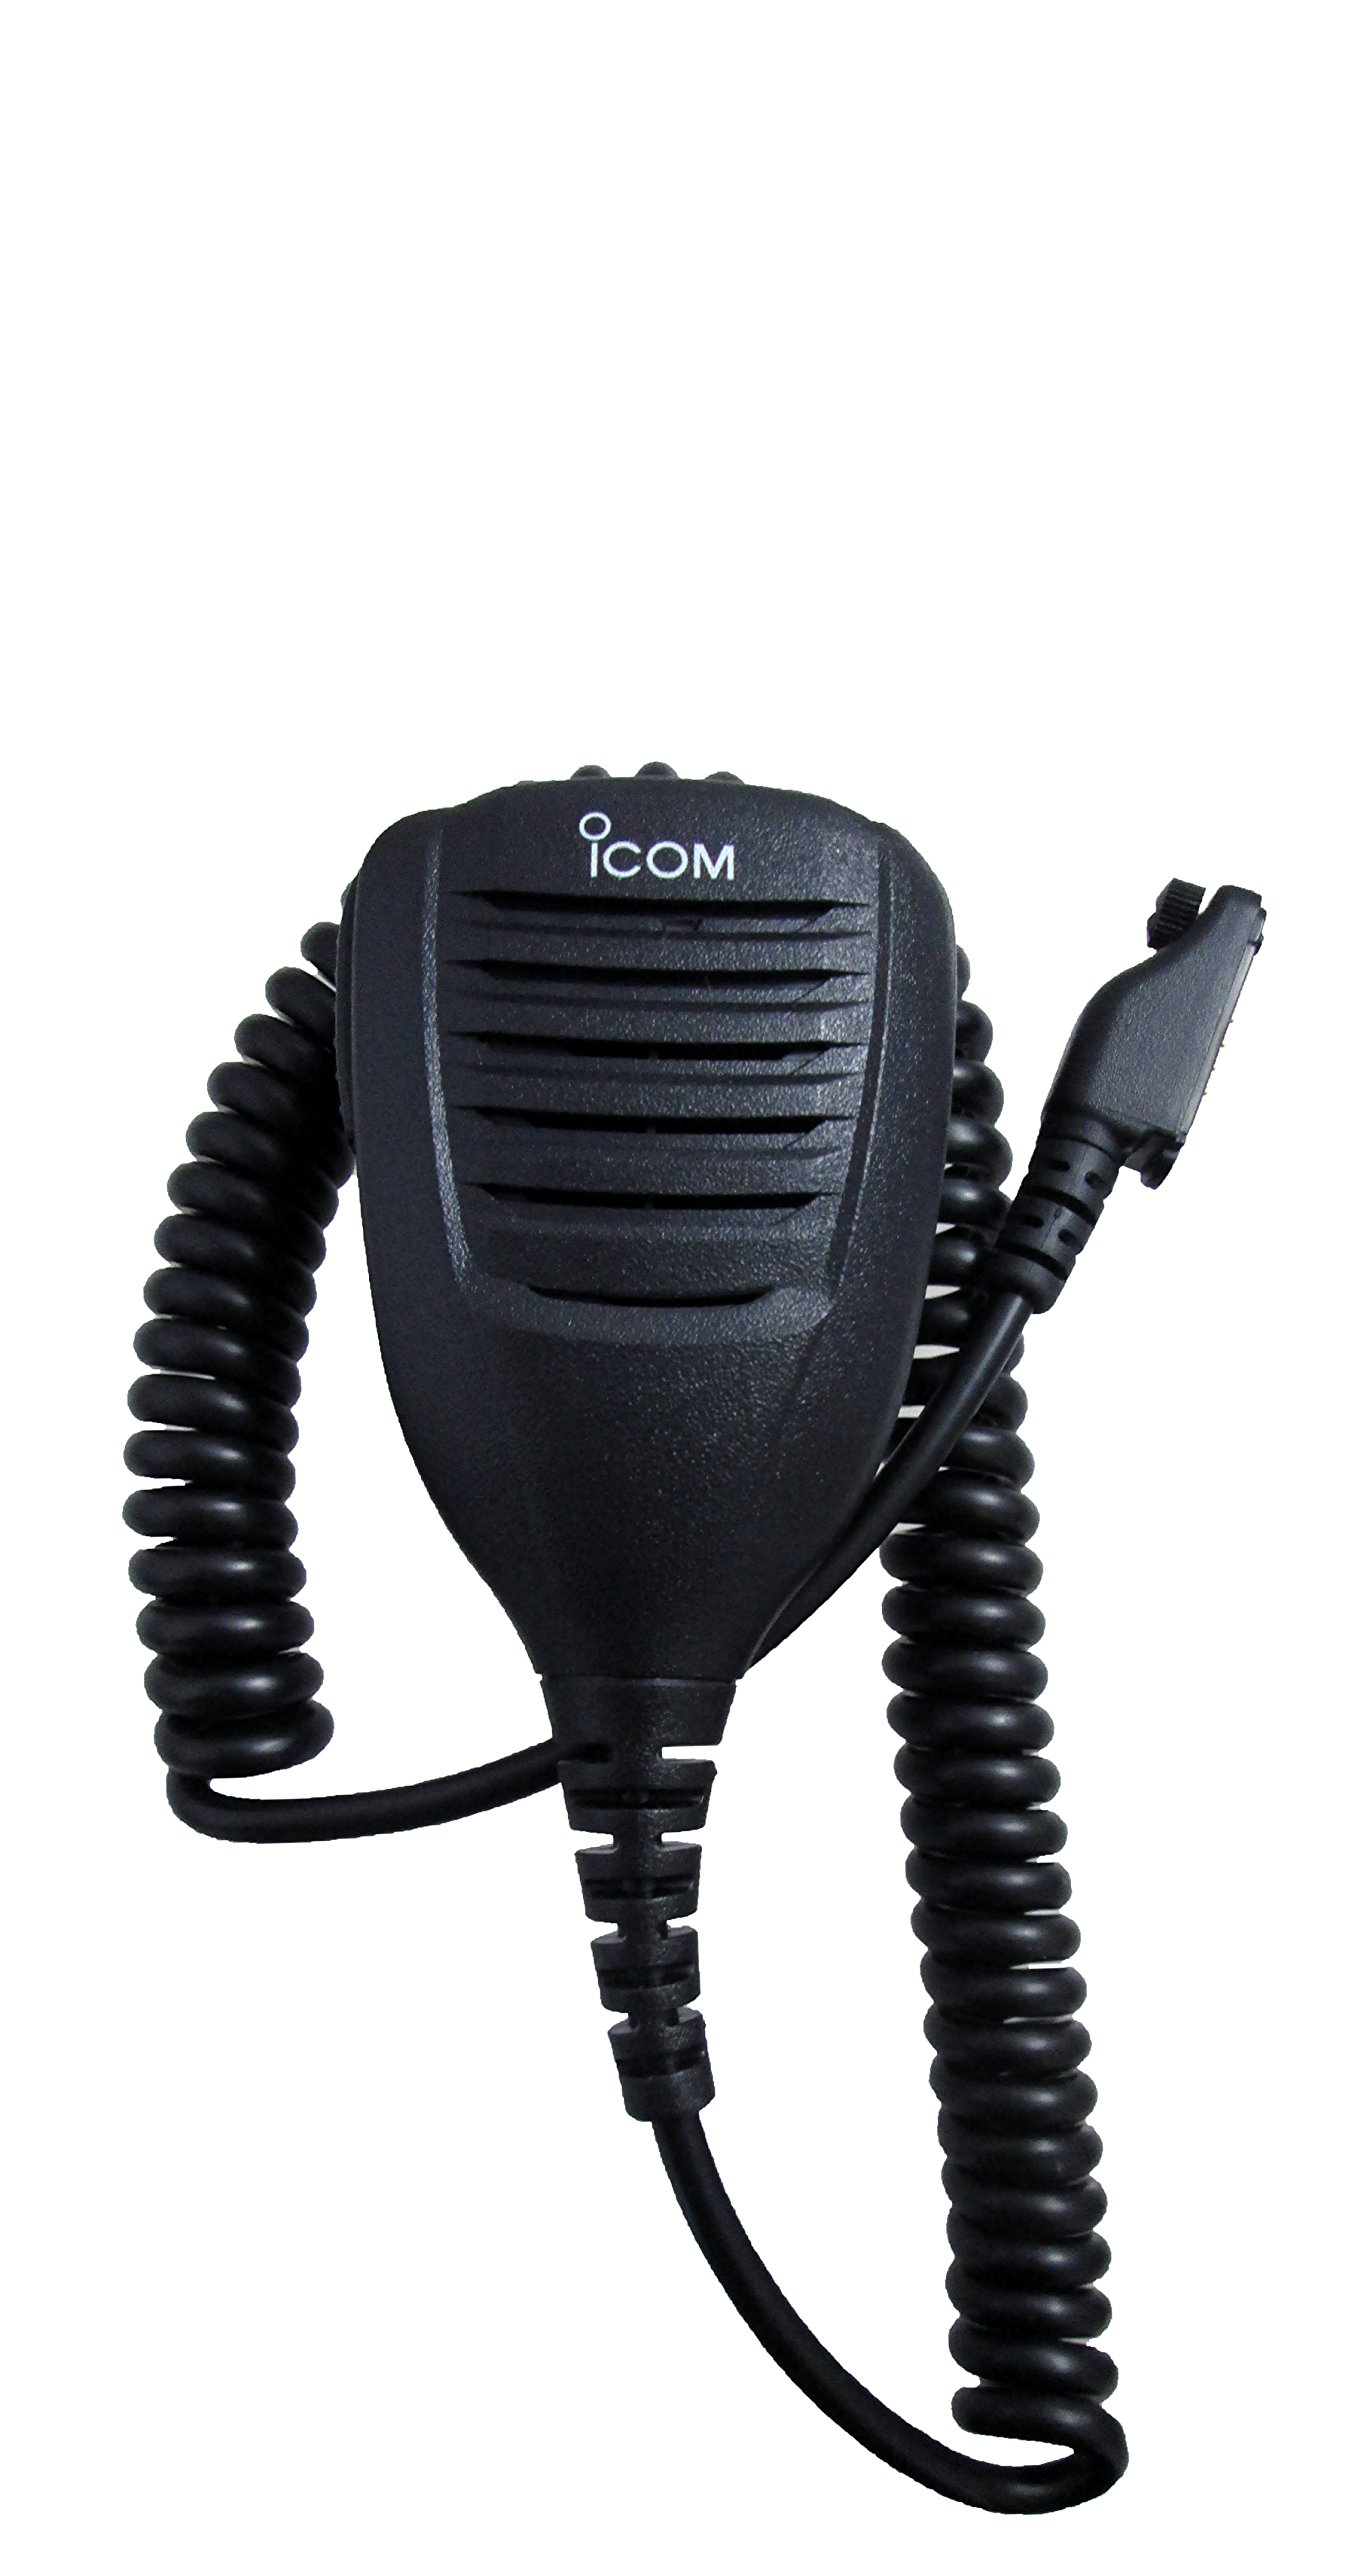 New Icom HM-169 IS IP57 Intrinsically Safe Mic F50, F60, F50V, F60V, F3161DT/DS, T/S, F3163T/S, F4161DT/DS, T/S, F4163T/S, F70DT/DS, T/S , F80DT/DS, T/S series radios